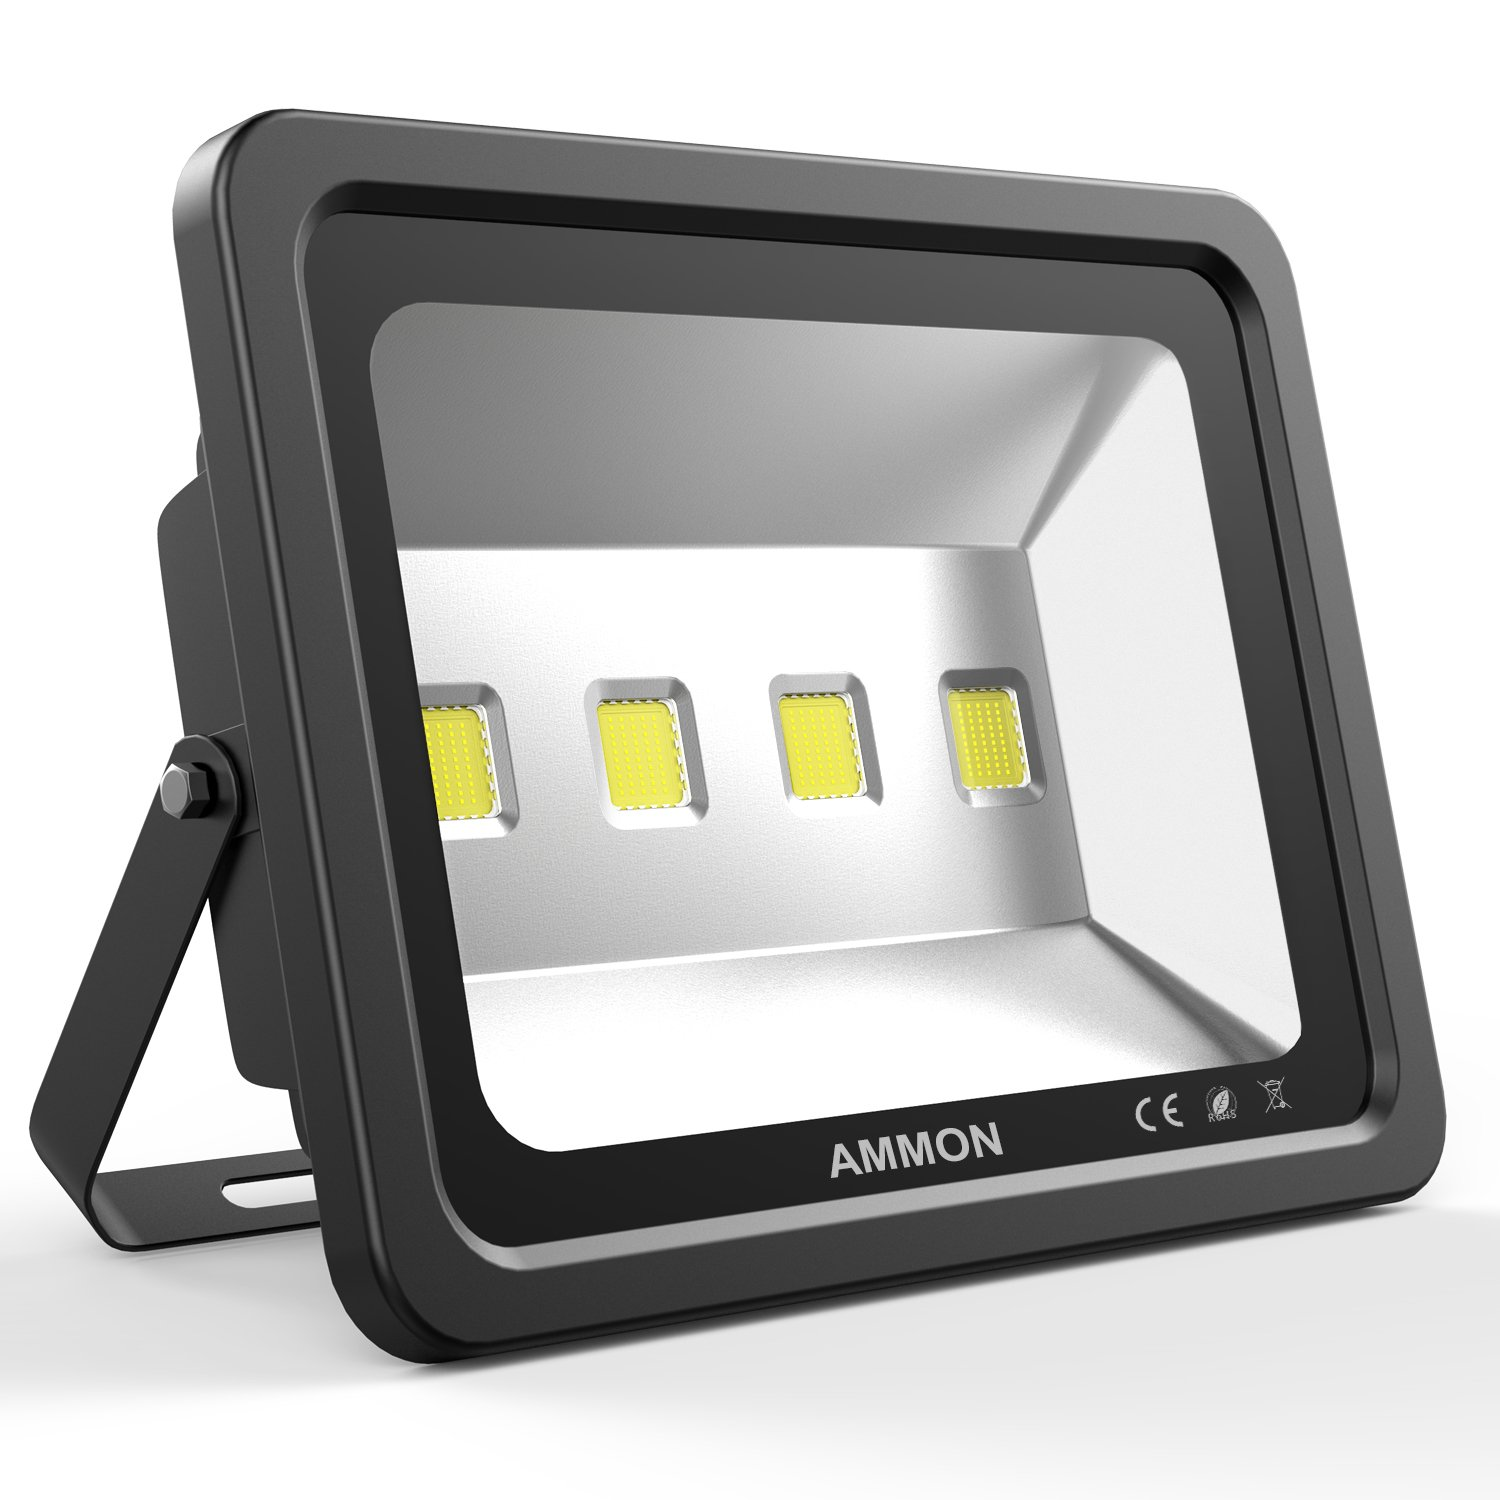 AMMON LED Flood Light, 200W Outdoor Waterproof IP65 20000lm Super Bright Flood Lamp Cool White 6000K Spotlight Lamp Daylight for Garden Yard, Party, Playground(black-200watt) by AMMON